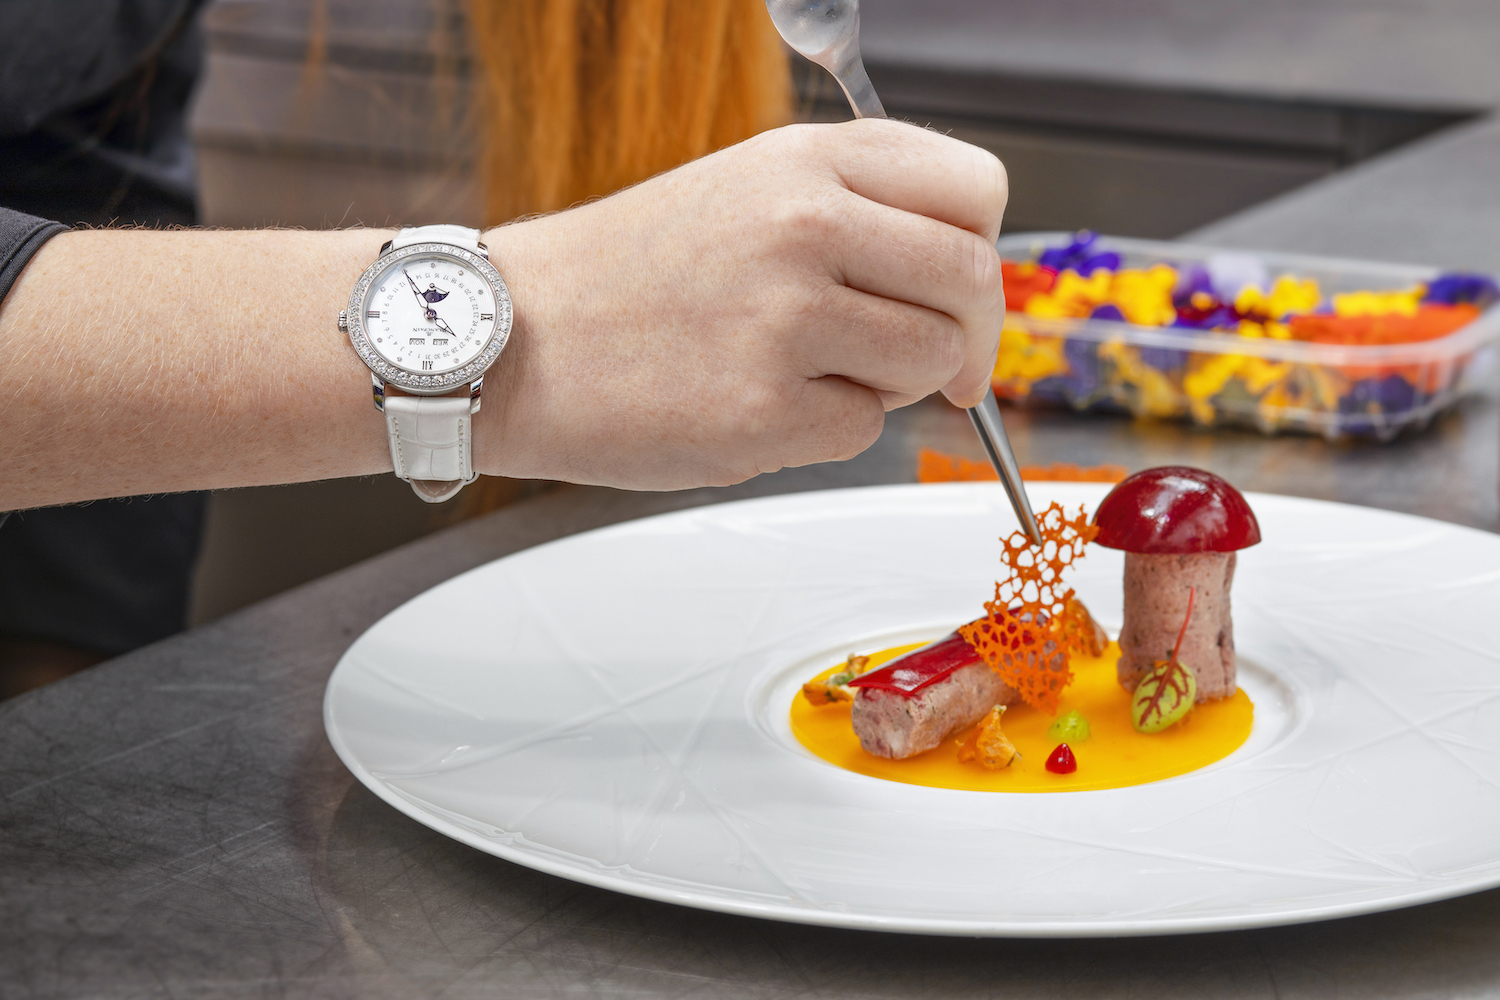 Blancpain Announces A Global Partnership With The Michelin Guide